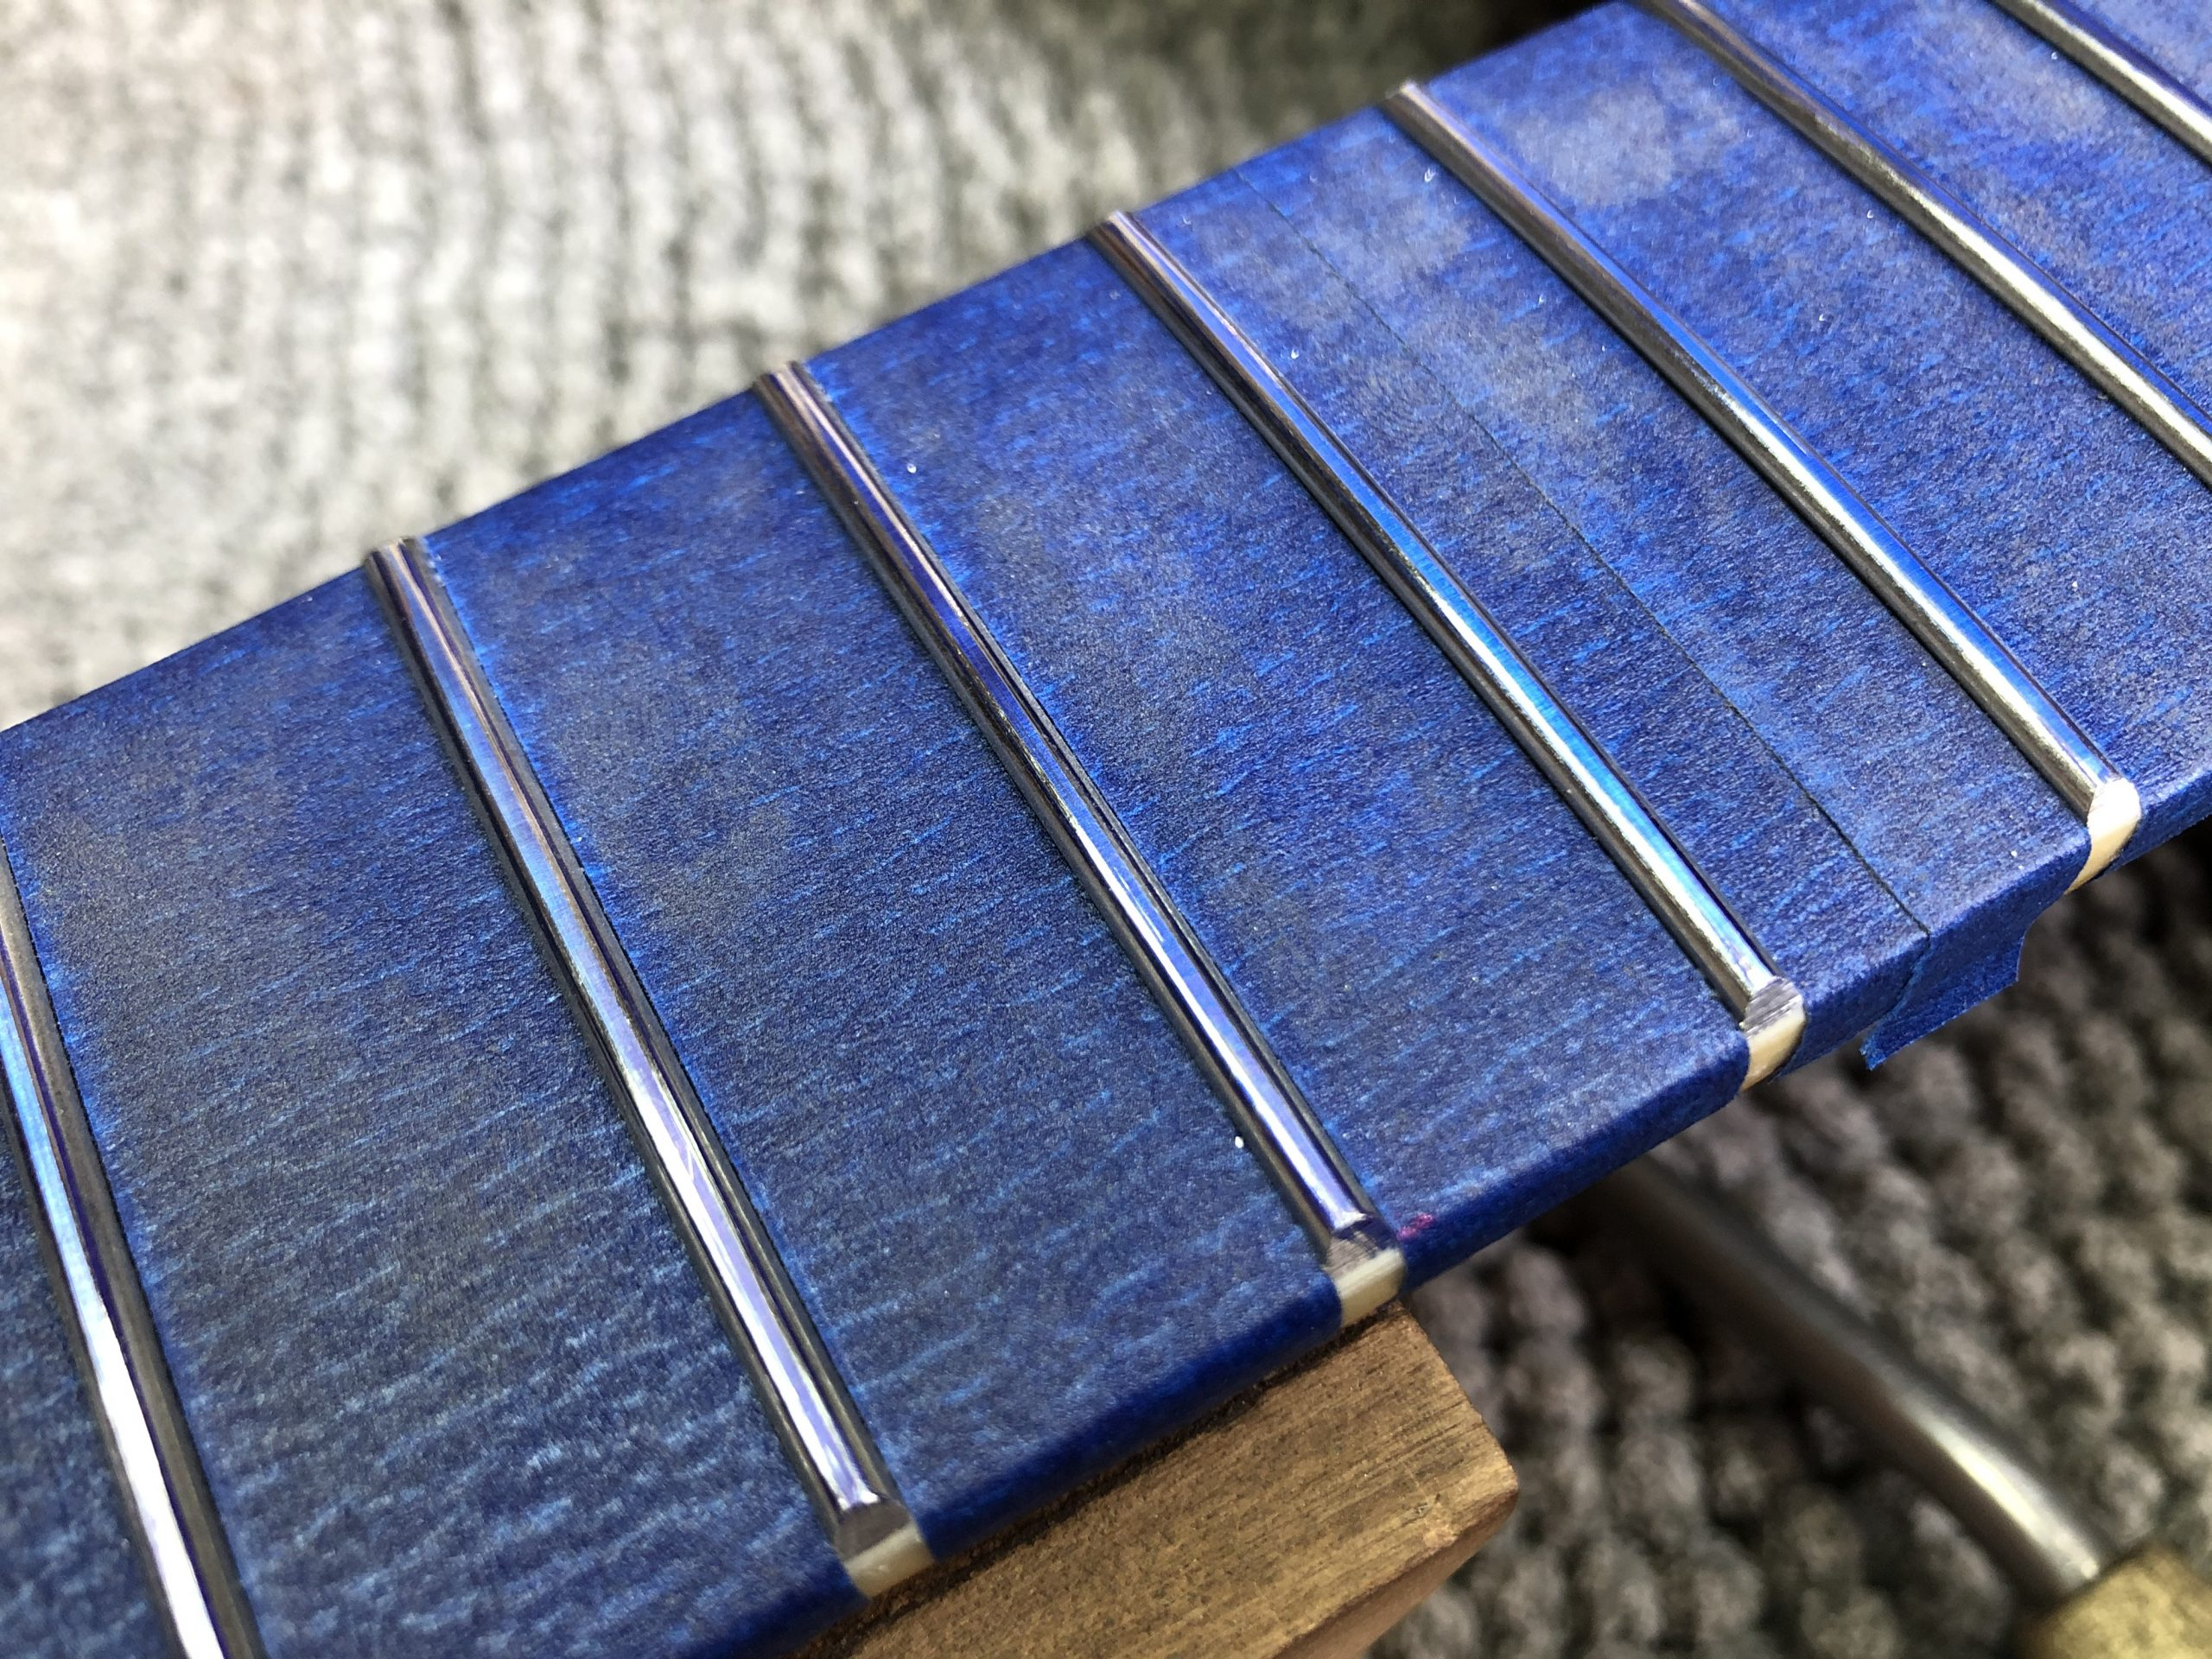 New frets crowned